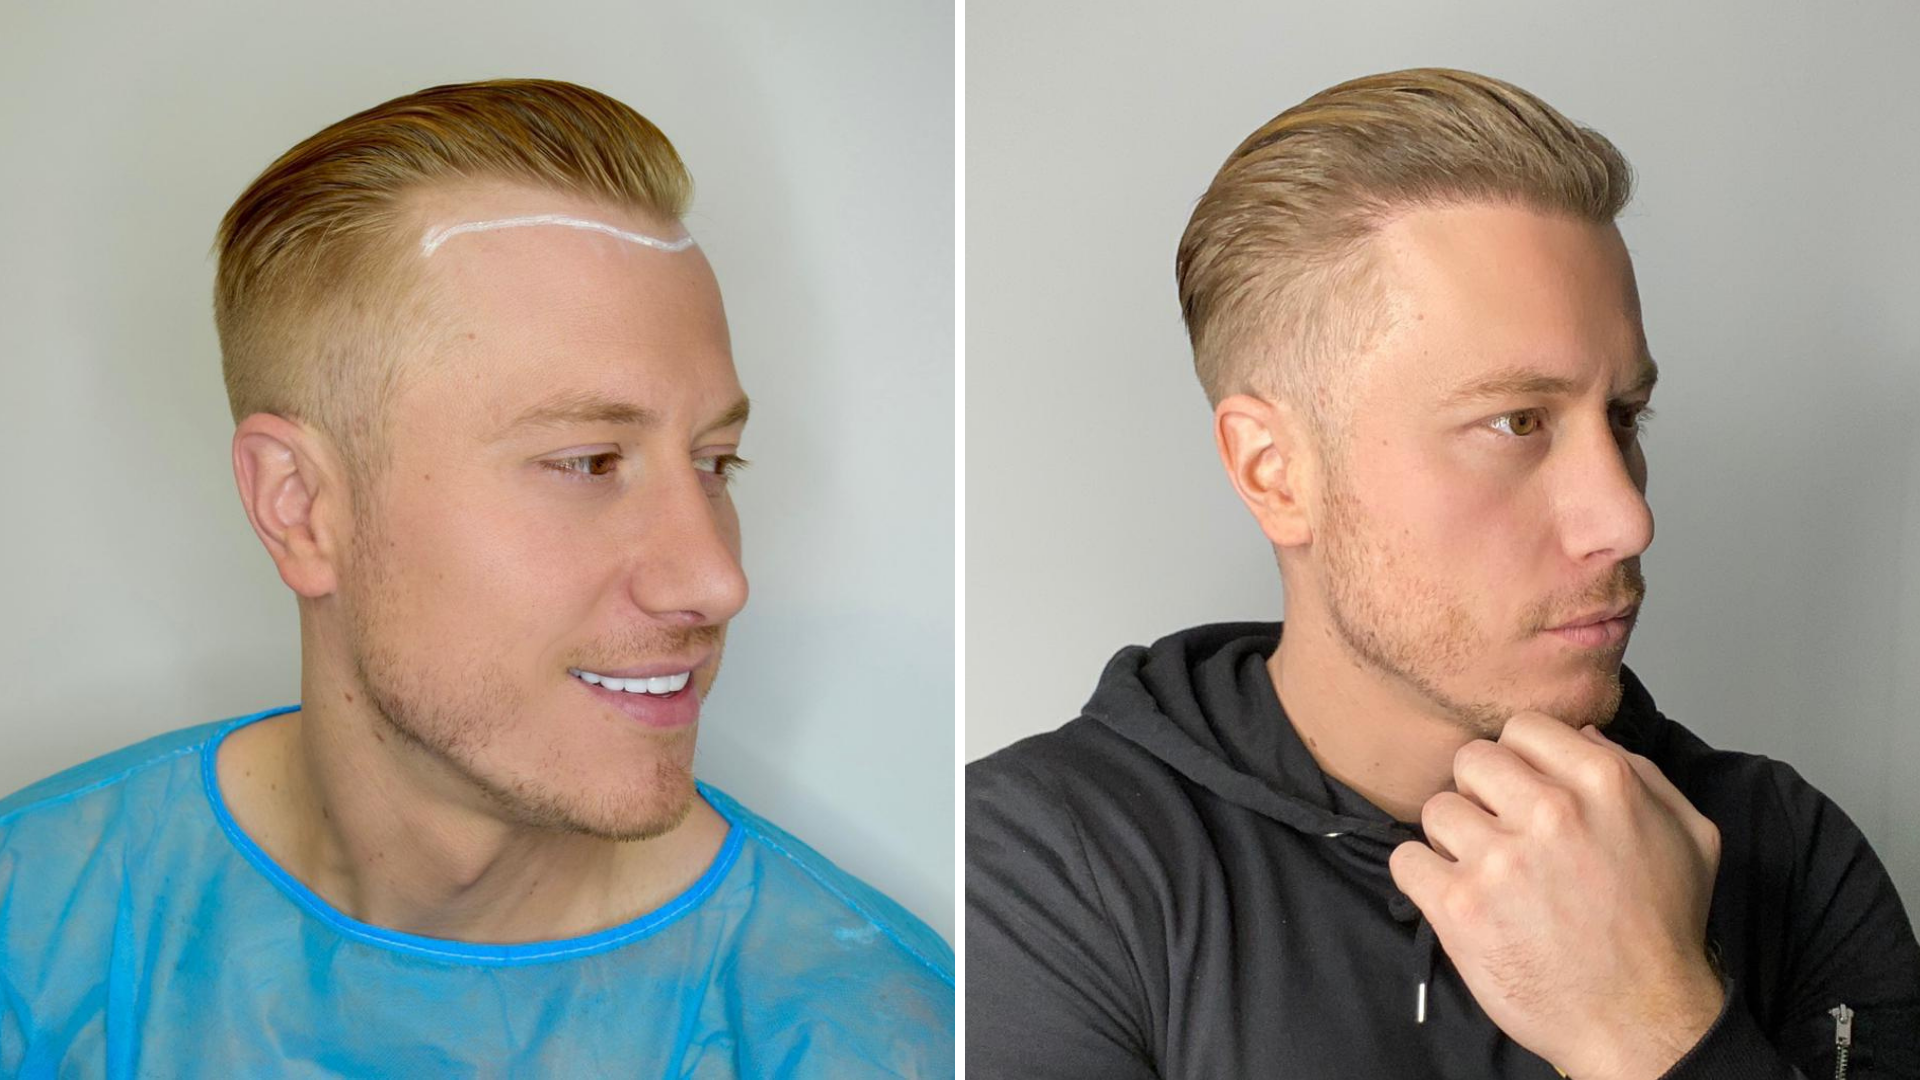 Hair Transplant after 3 months – what to expect